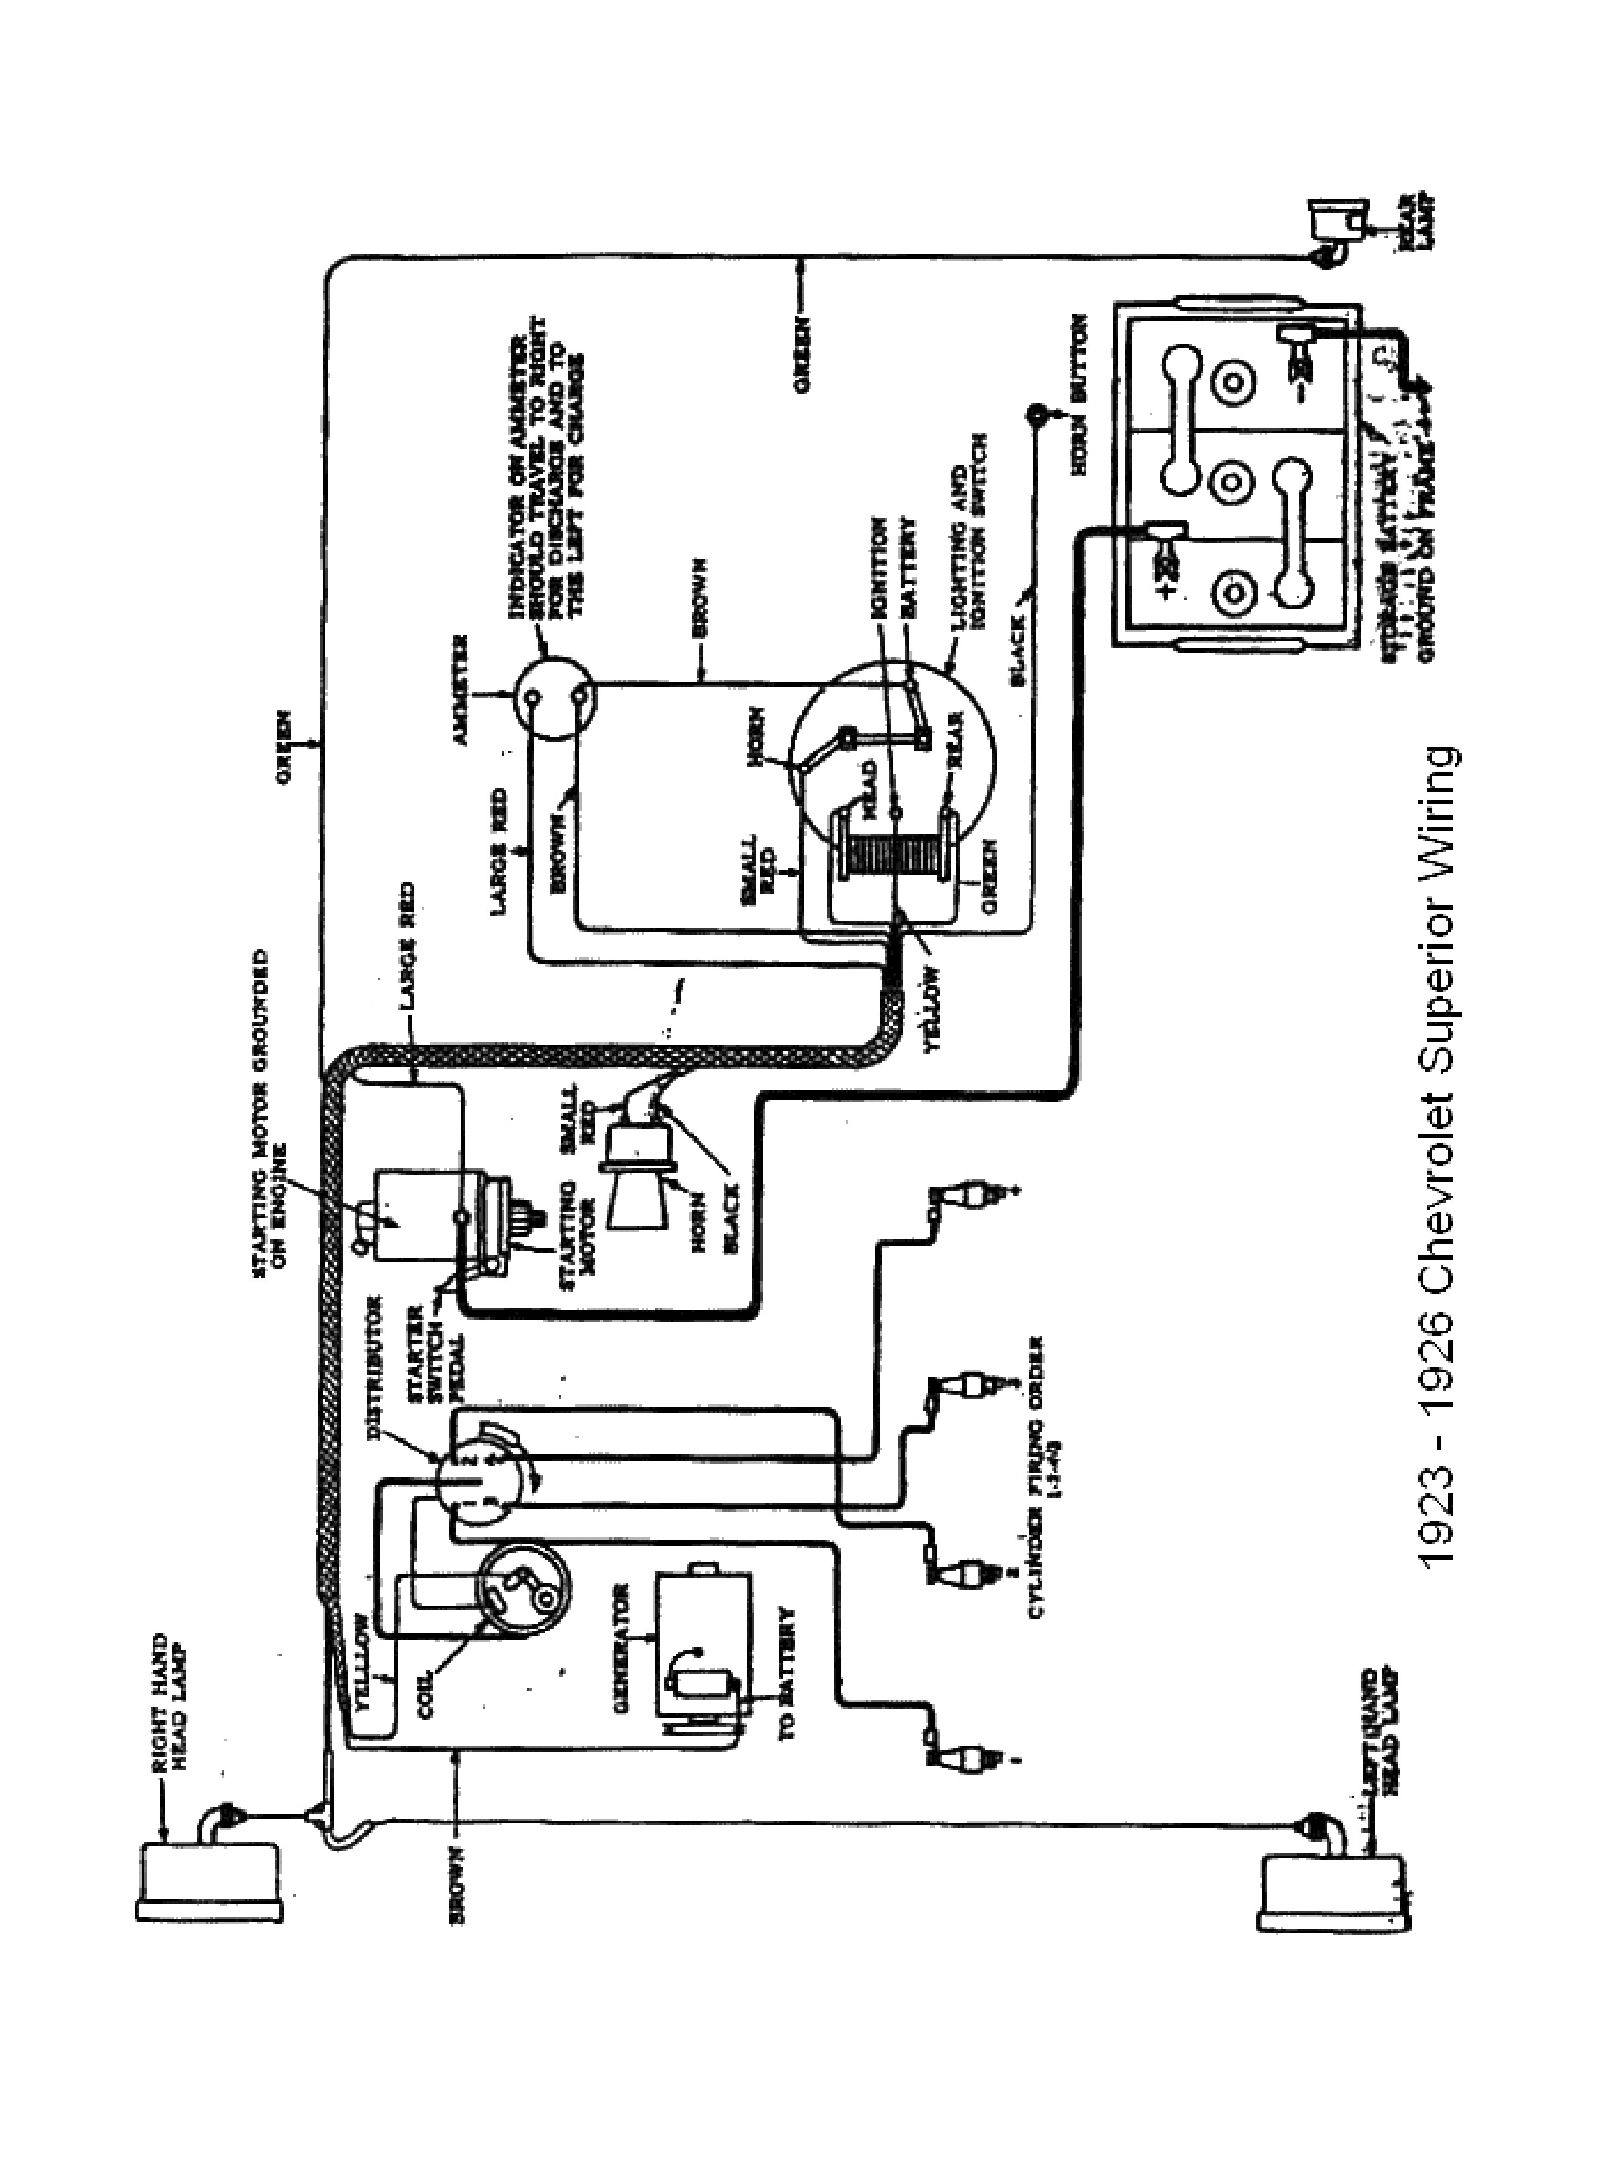 Chevy wiring diagrams rh chevy oldcarmanualproject chevrolet truck wiring diagrams chevy truck wiring diagram